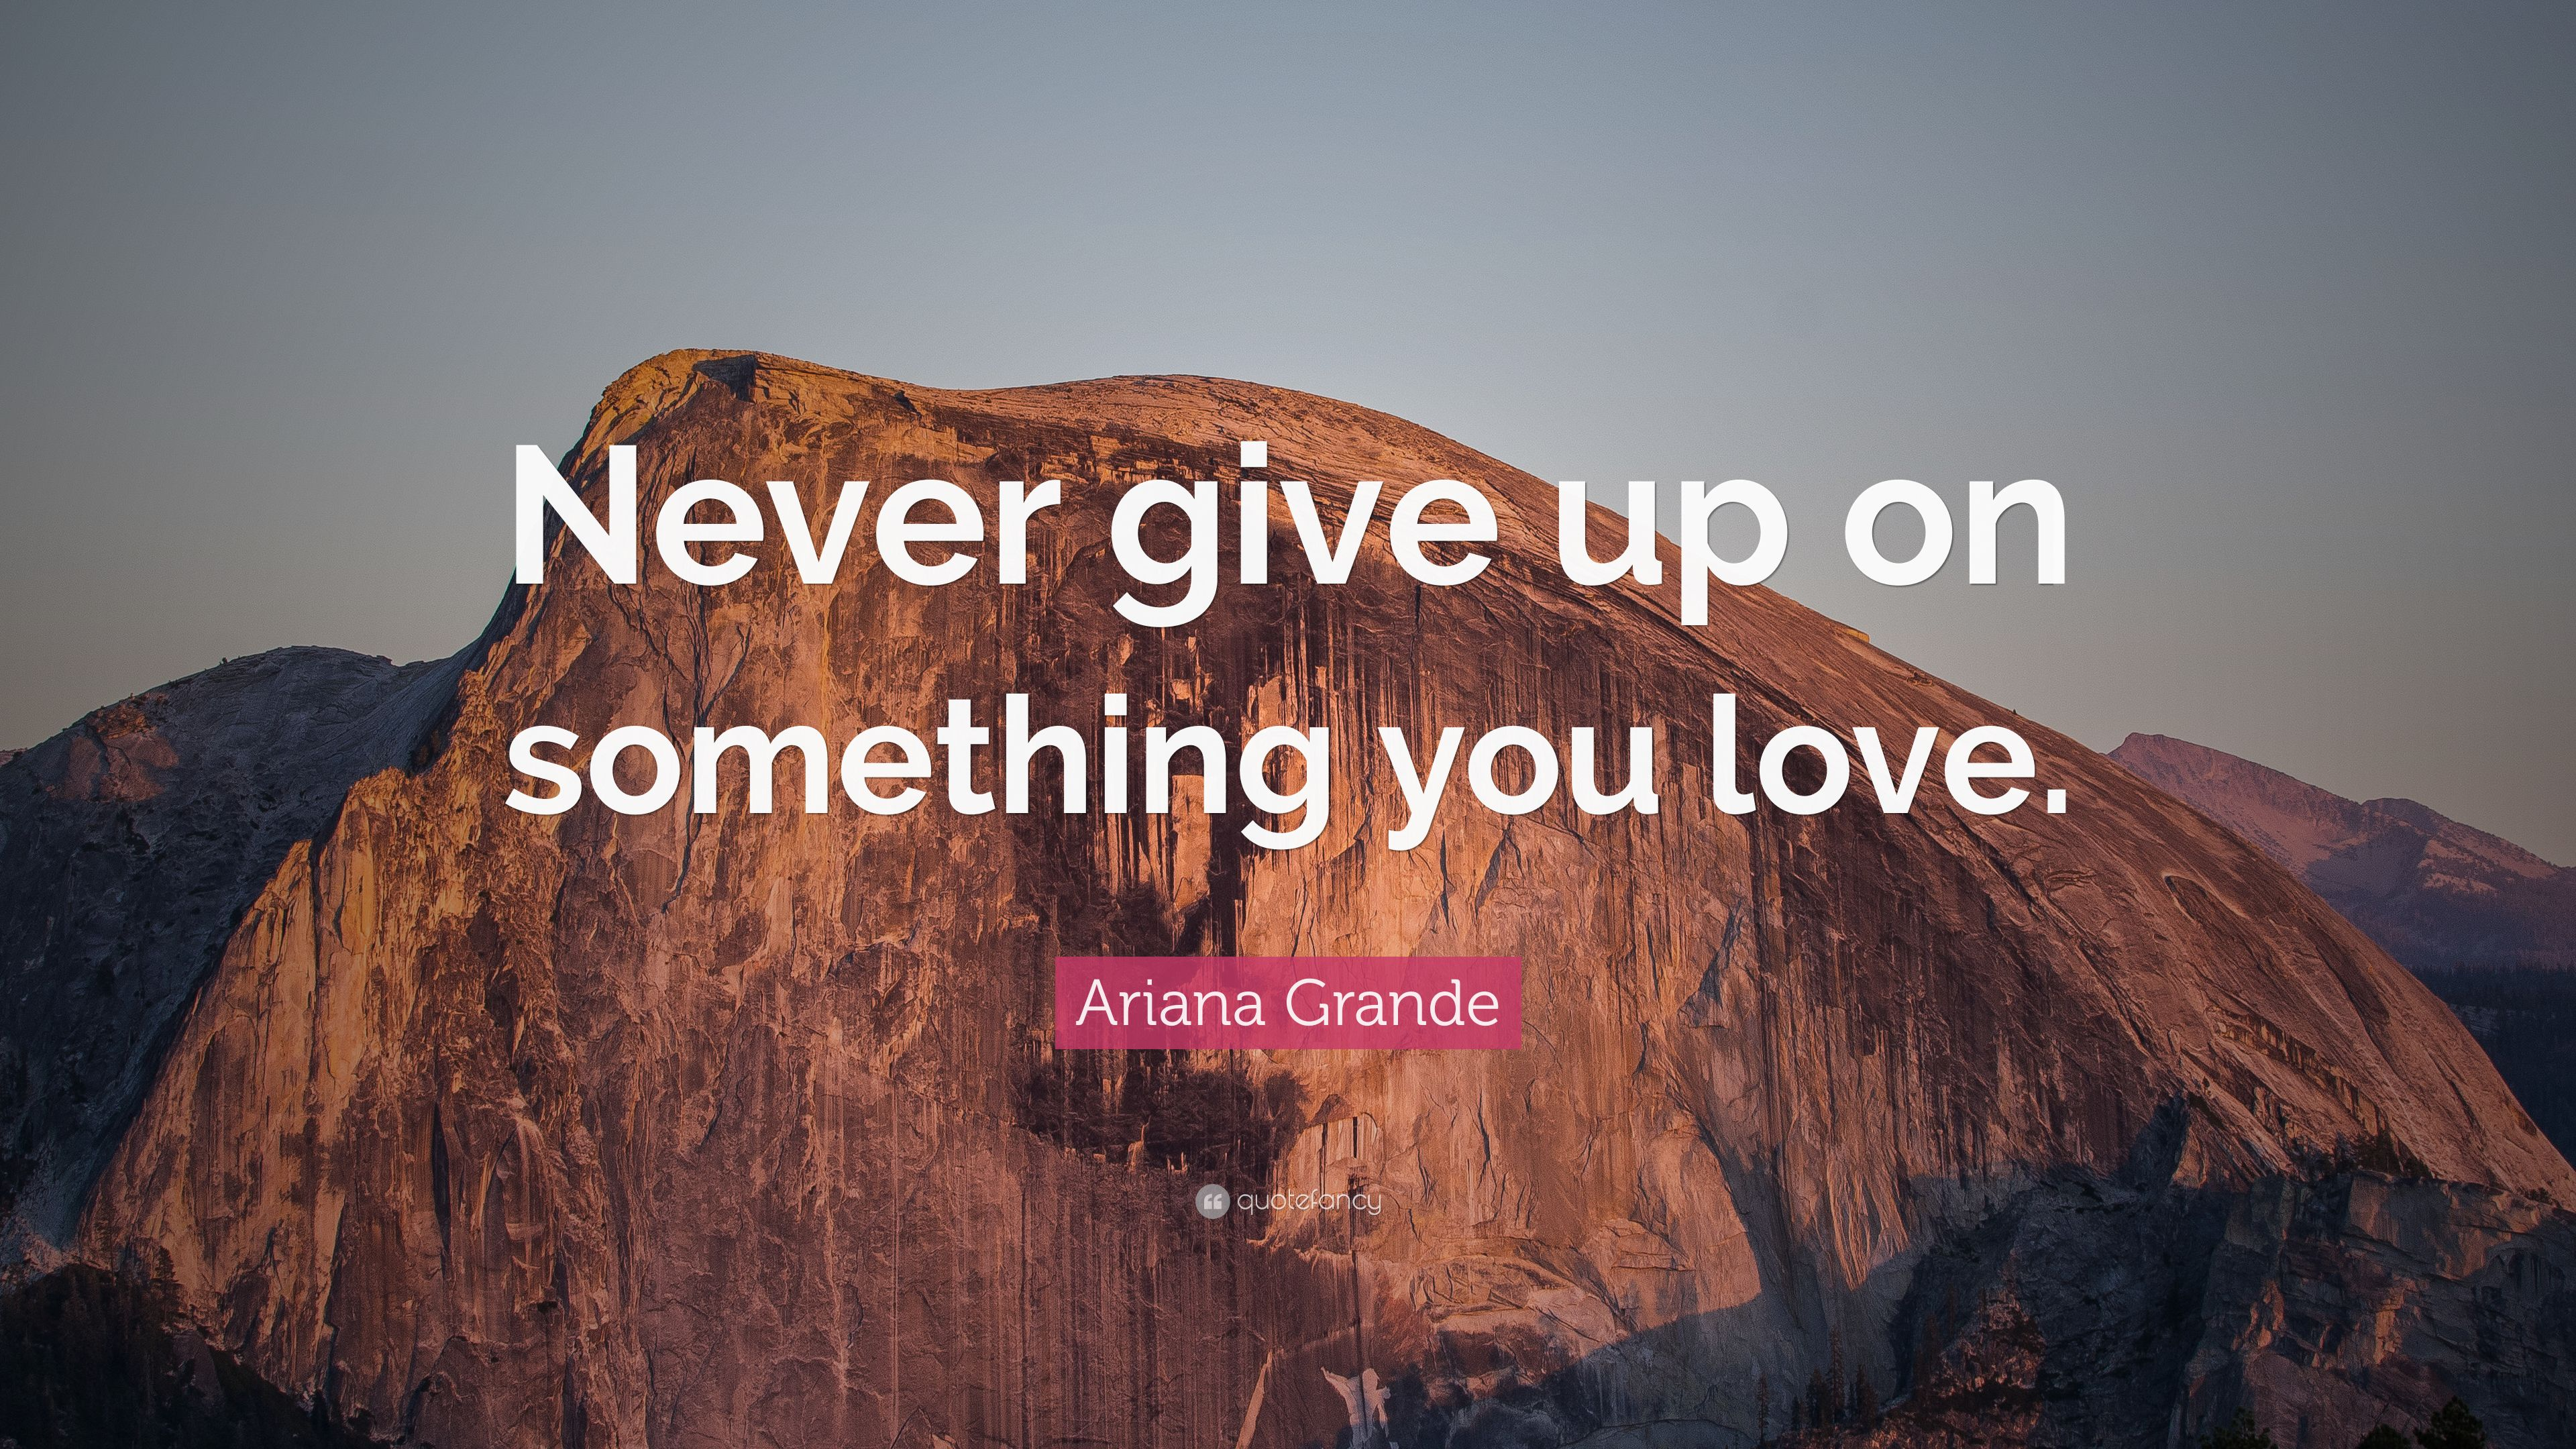 Ariana Grande Quote: Never give up on something you love